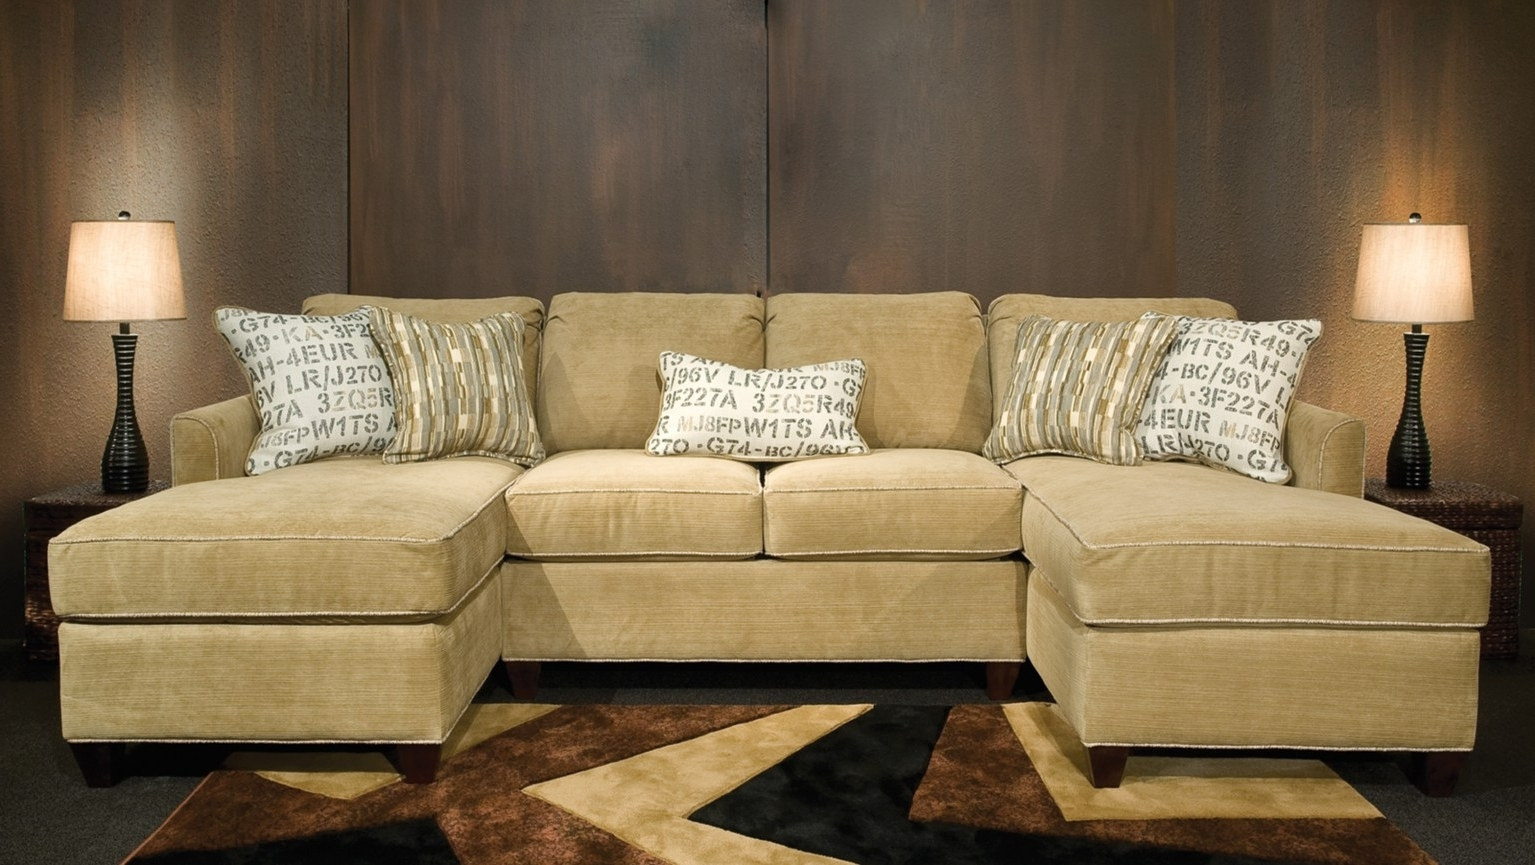 Most Recent Convertible Furniture For Small Spaces Small Sectional Sofa Ikea Intended For Inexpensive Sectional Sofas For Small Spaces (View 14 of 20)